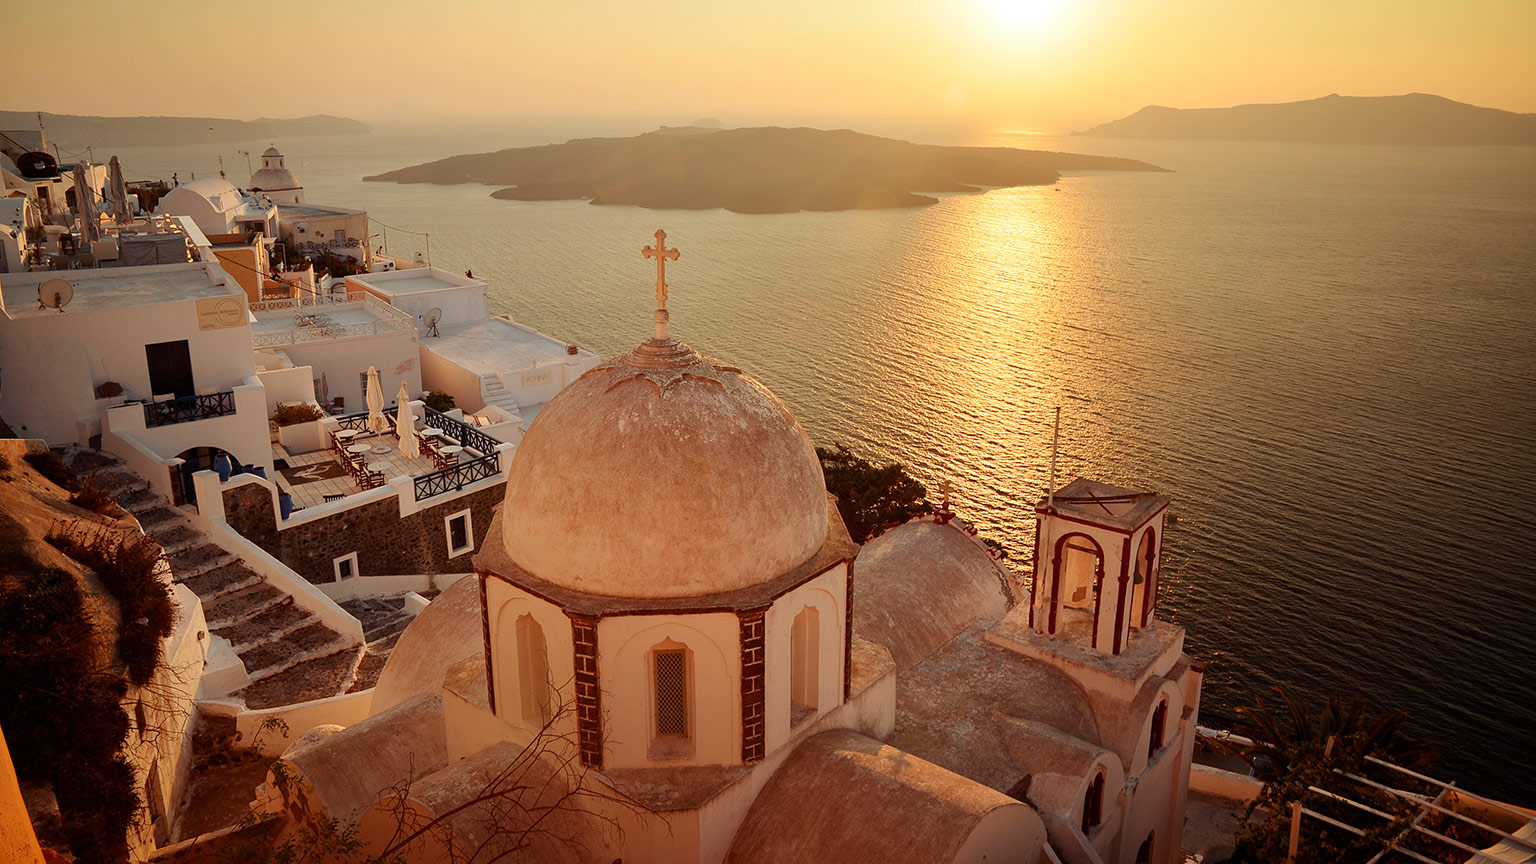 Greece-Island-Sunset-Church-Dome-Ocean-Scott-Urquhart